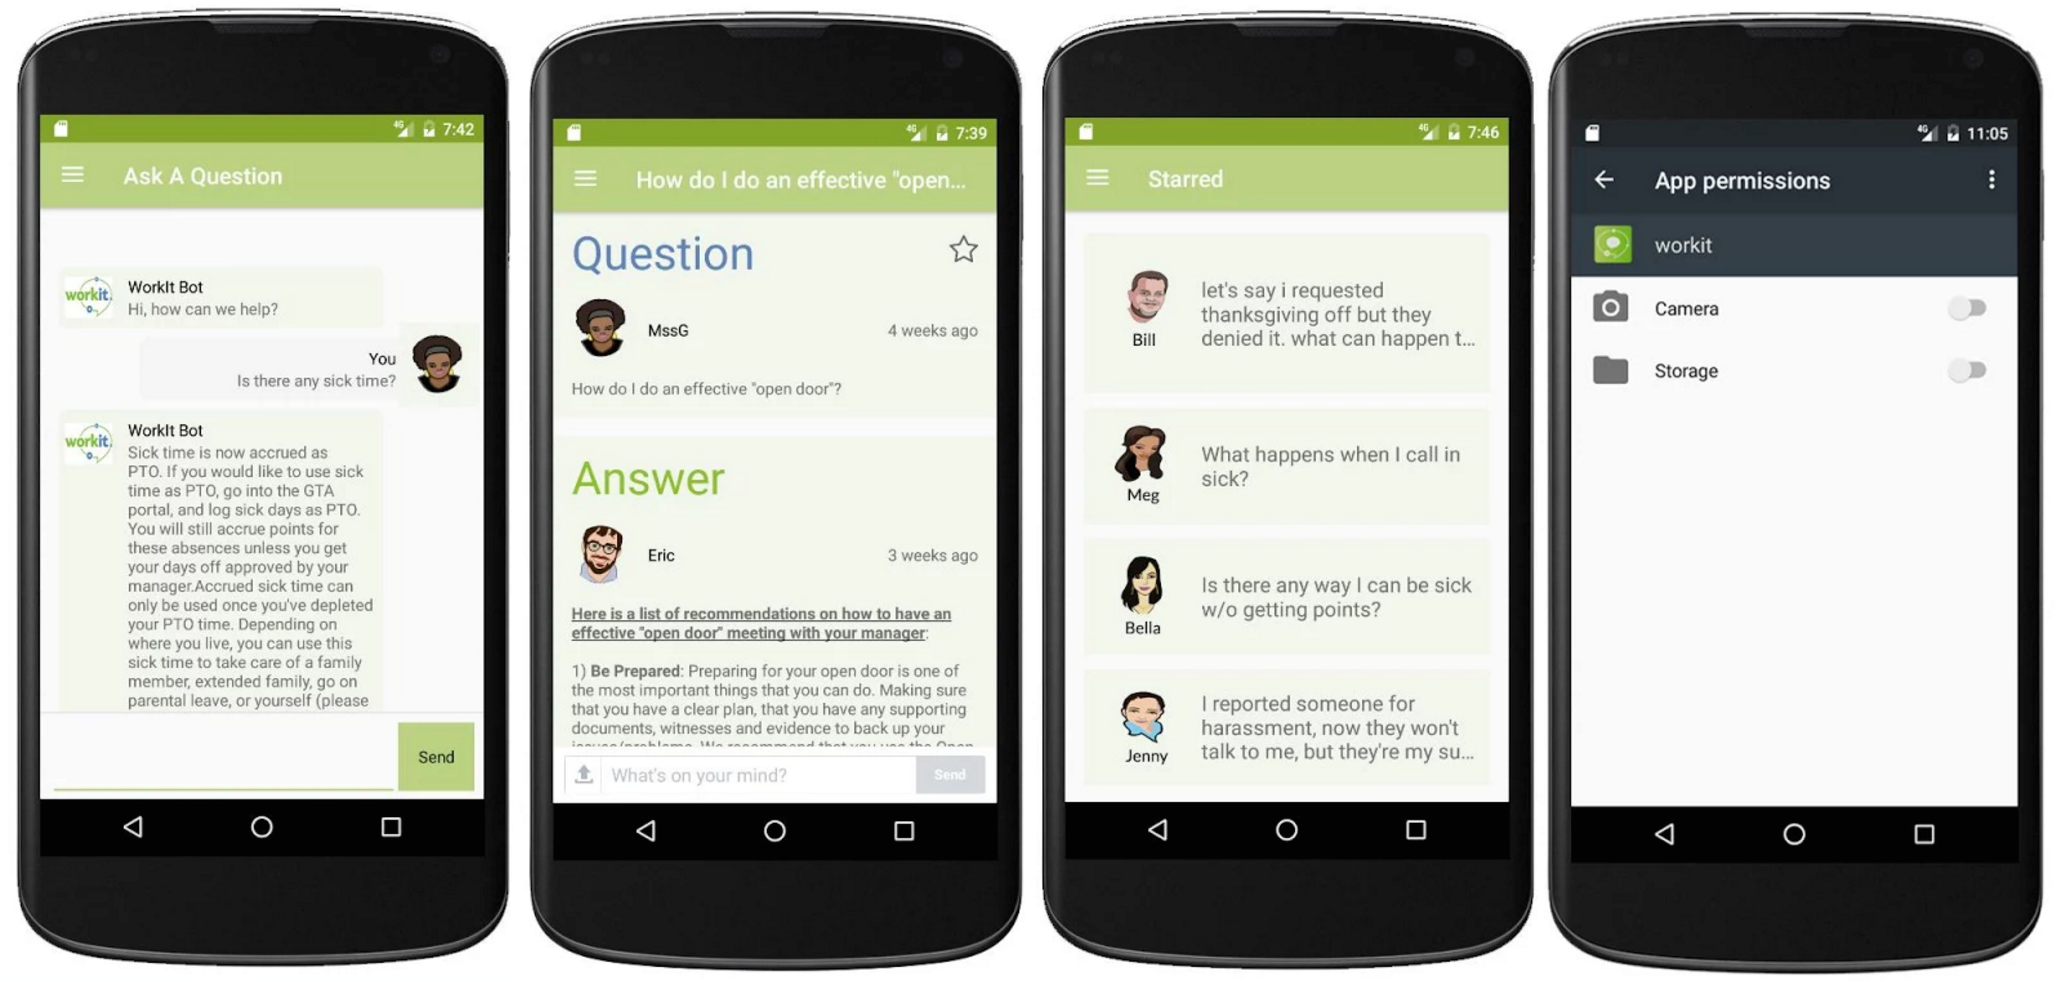 Walmart smears worker-based chat app with lies and scare tactics